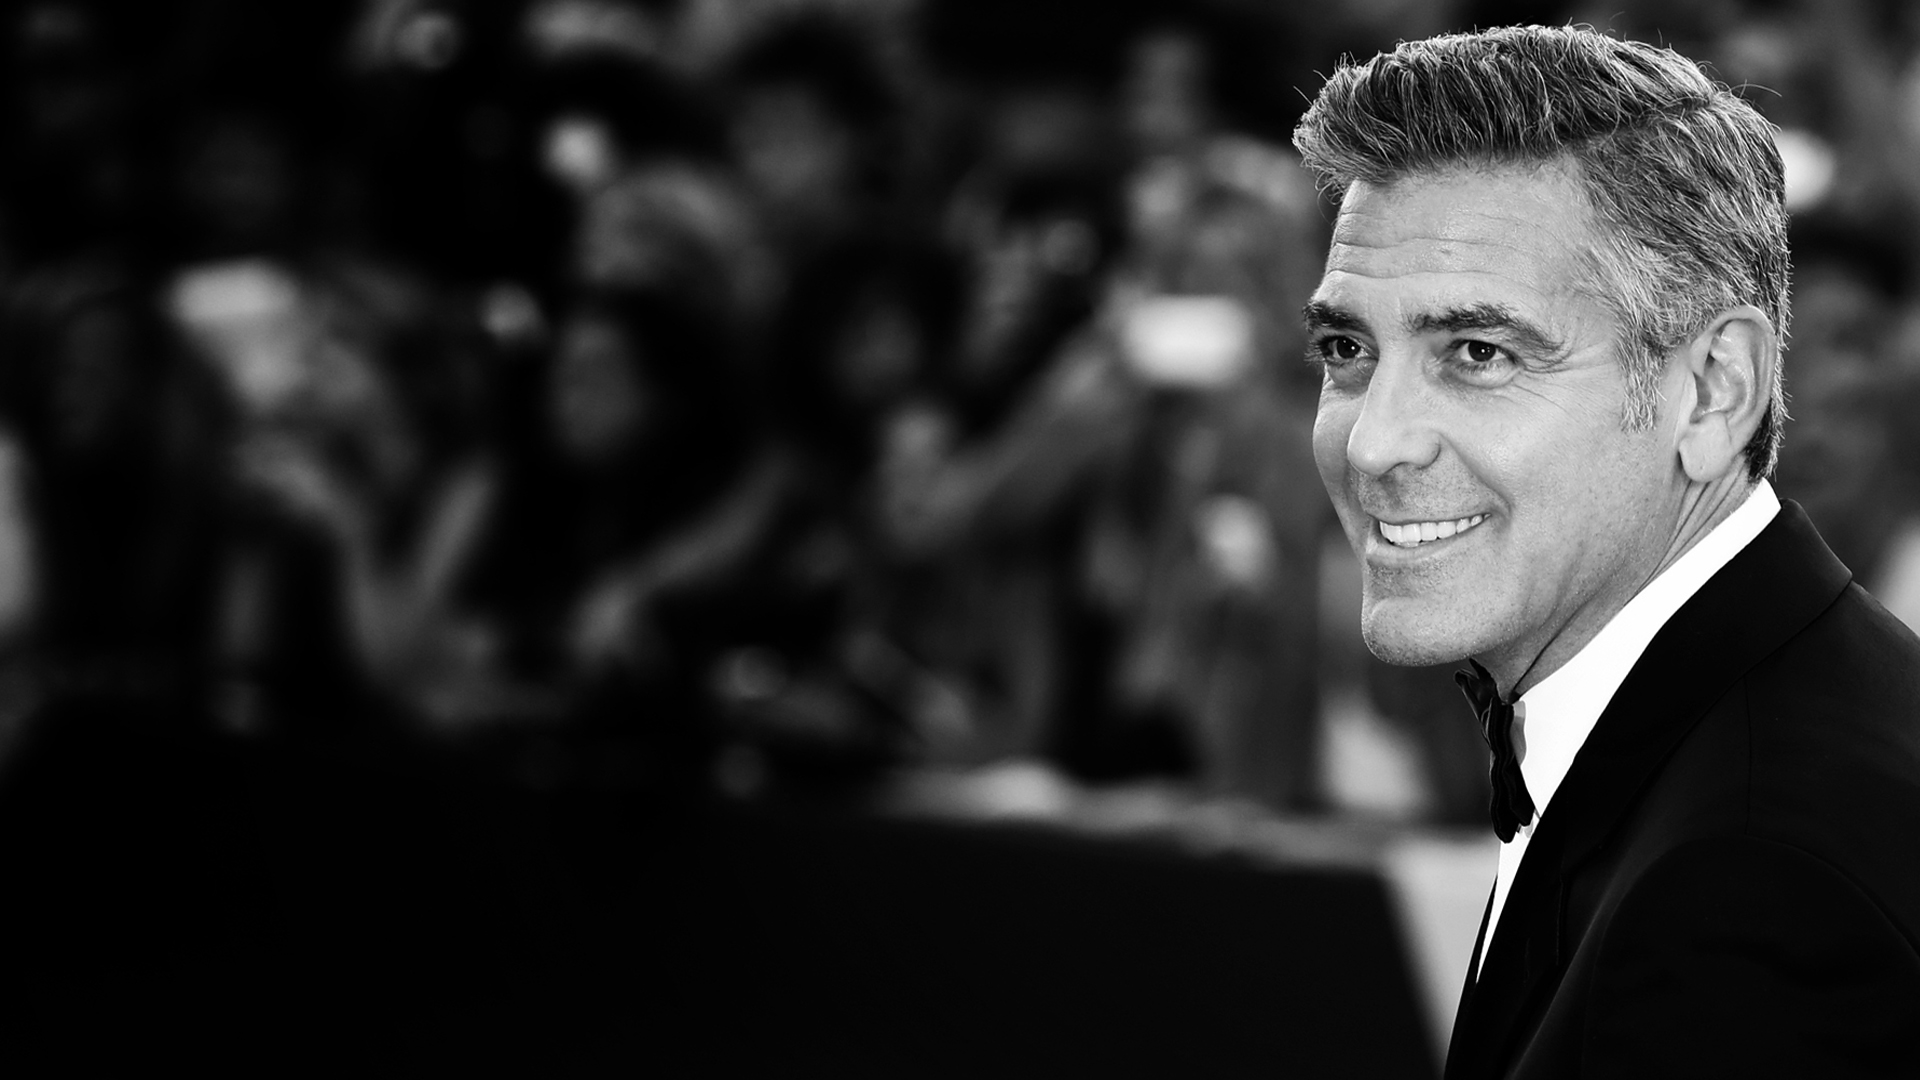 George Clooney Widescreen Computer Wallpaper 1066 1920x1080 px 1920x1080